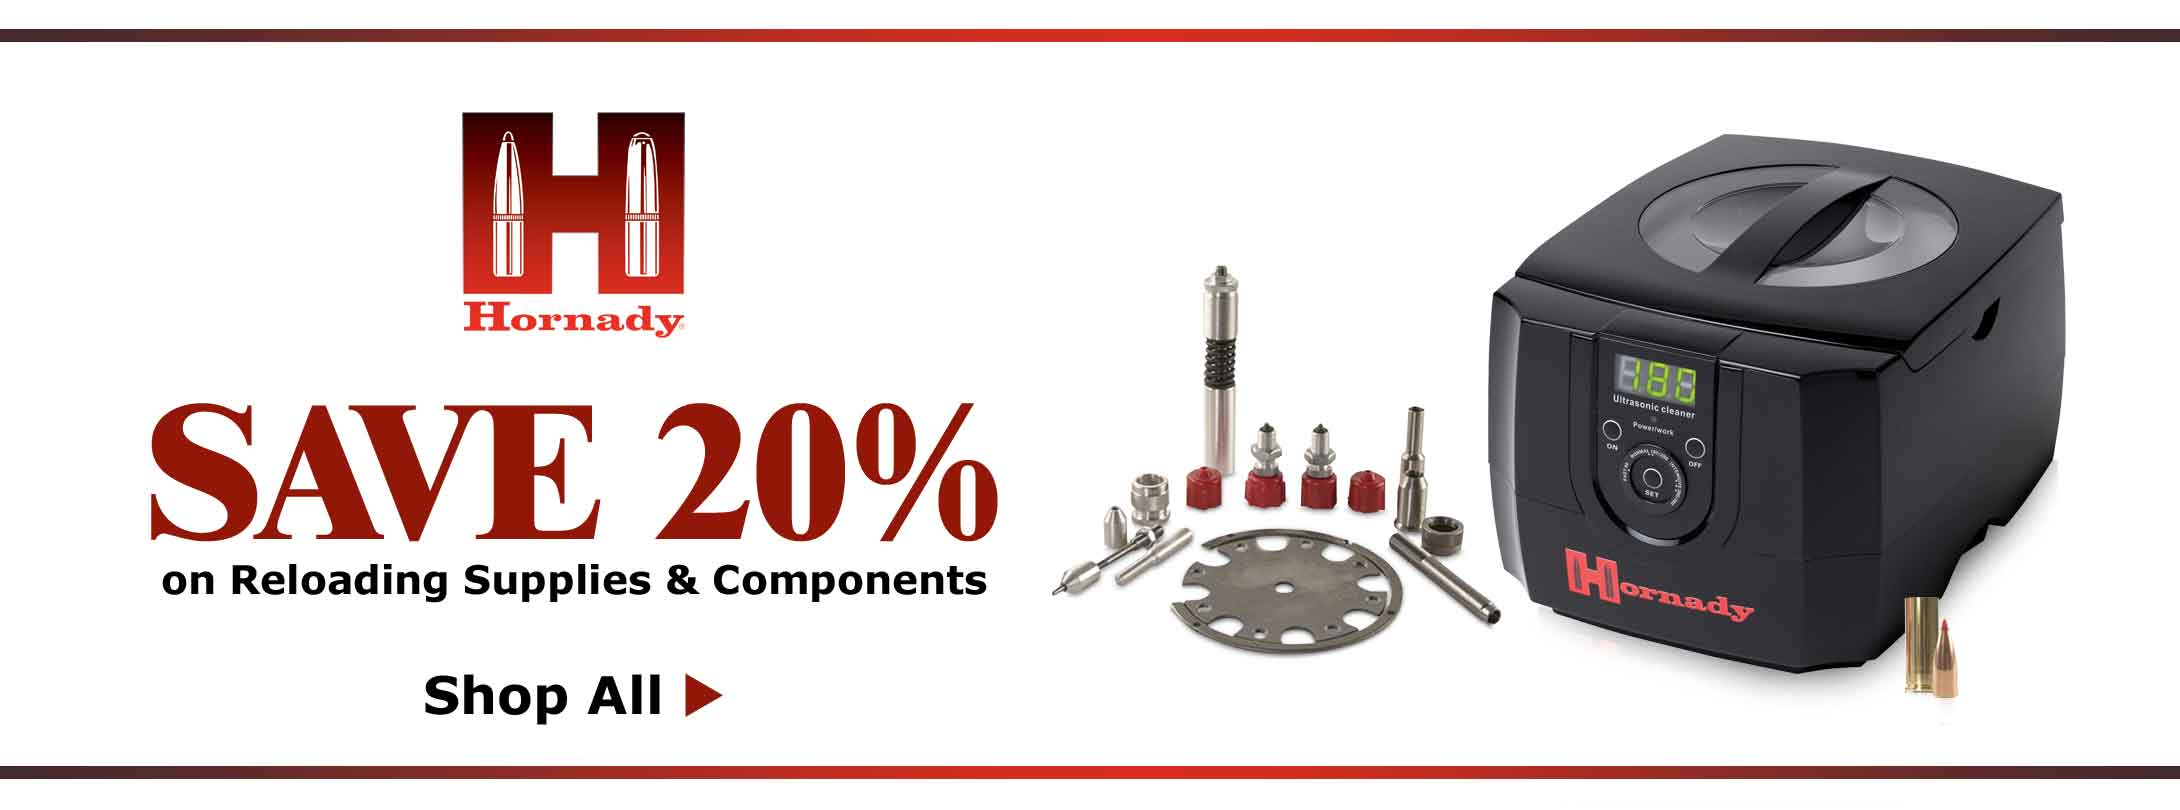 Save 20% on Hornady Reloading